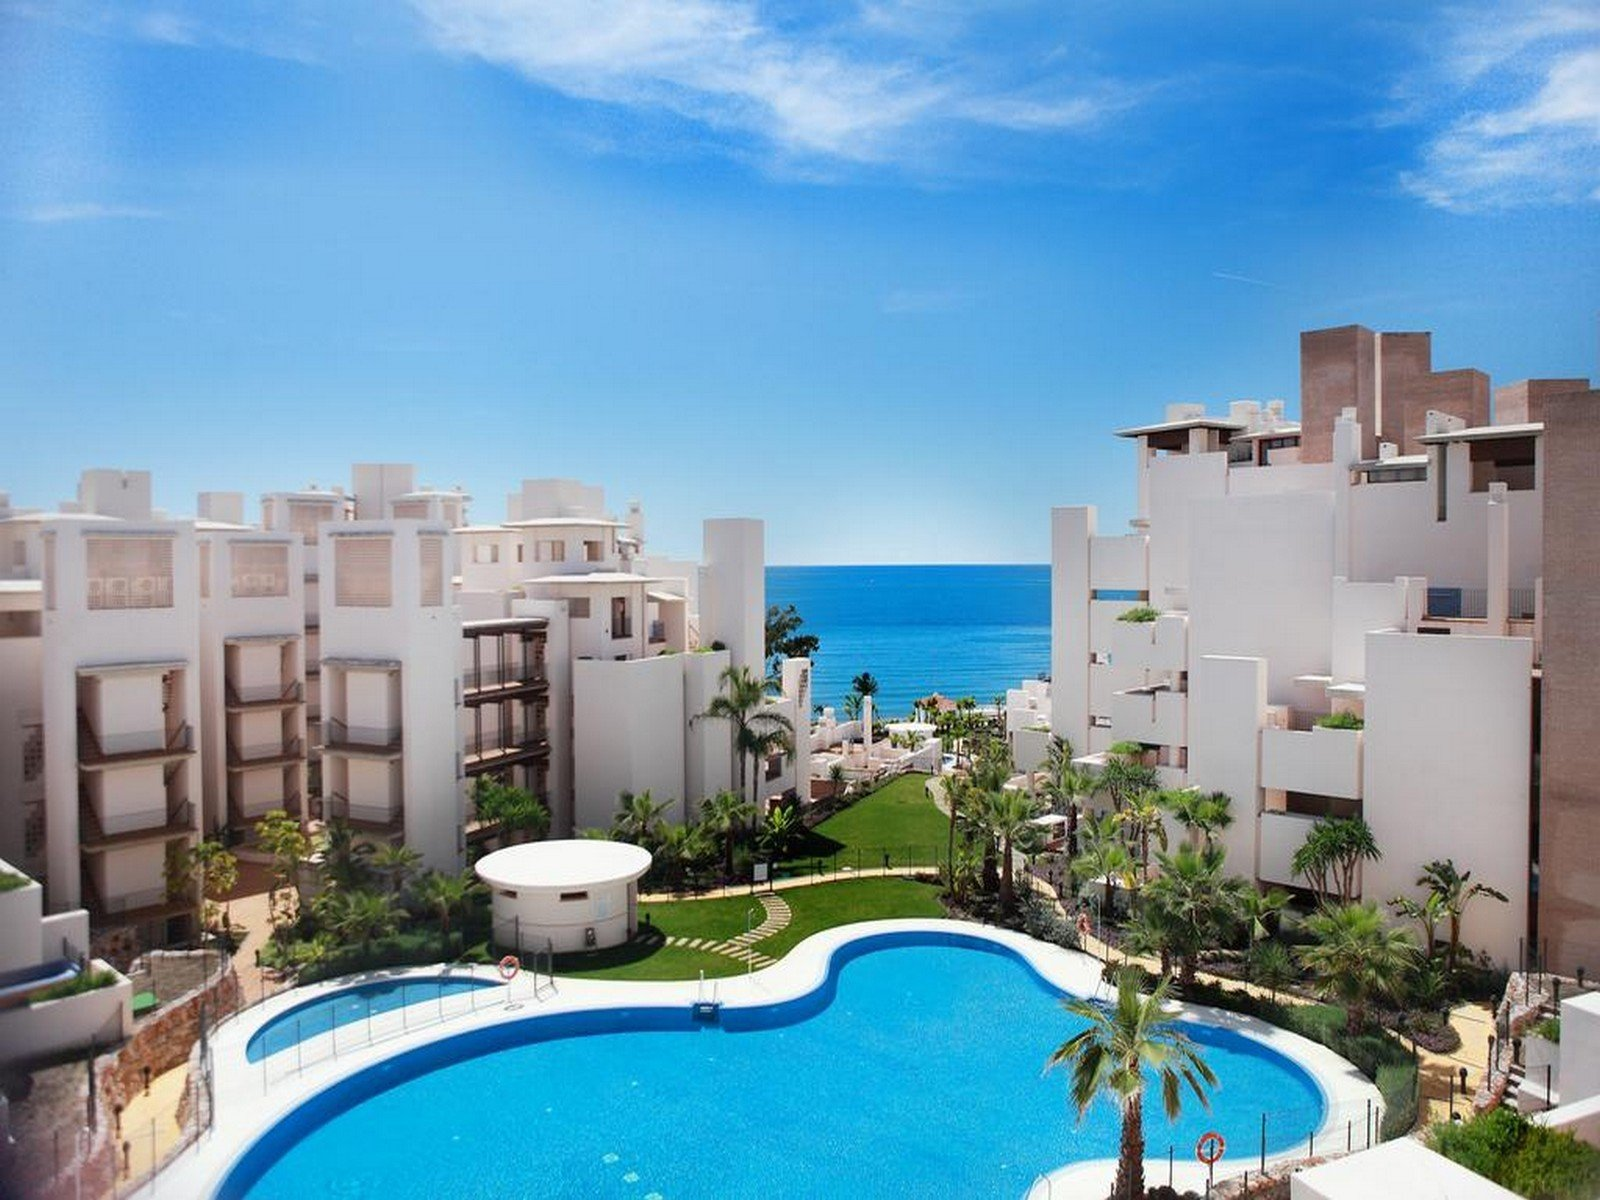 Penthouse for sale in Estepona, Bahia de la Plata